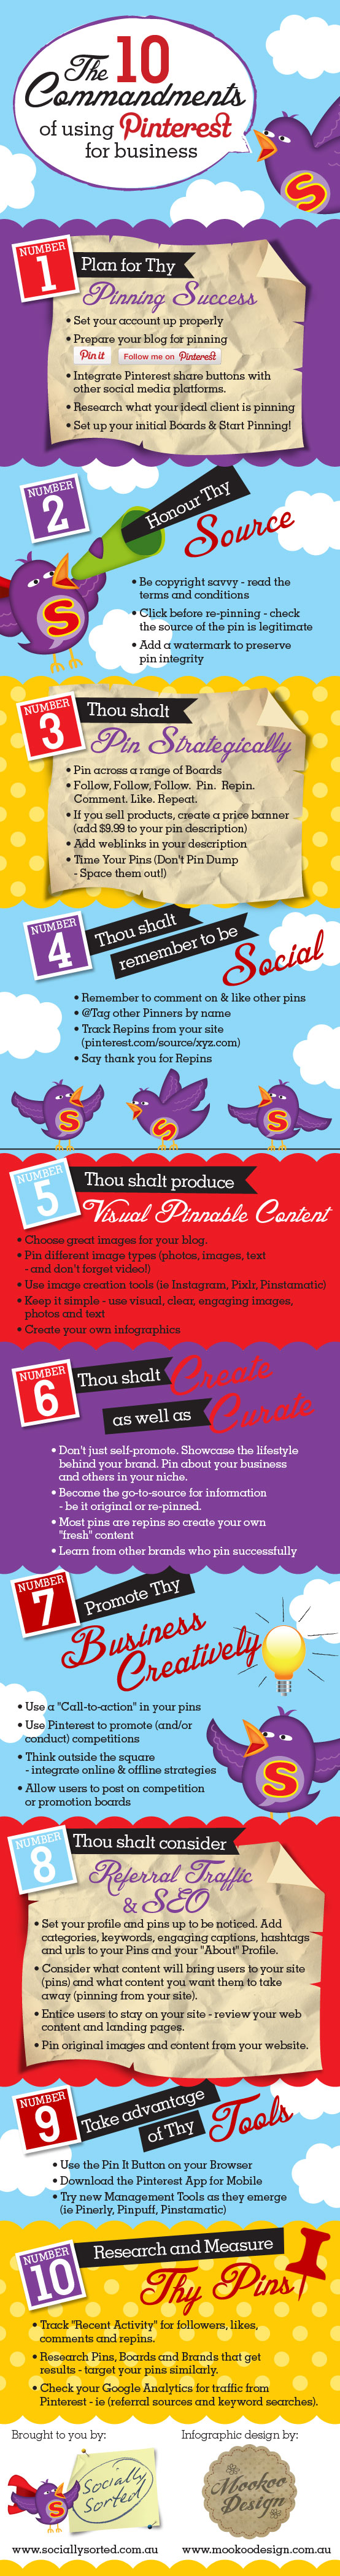 10-Commandments-Of-Pinterest-For-Business-infographic